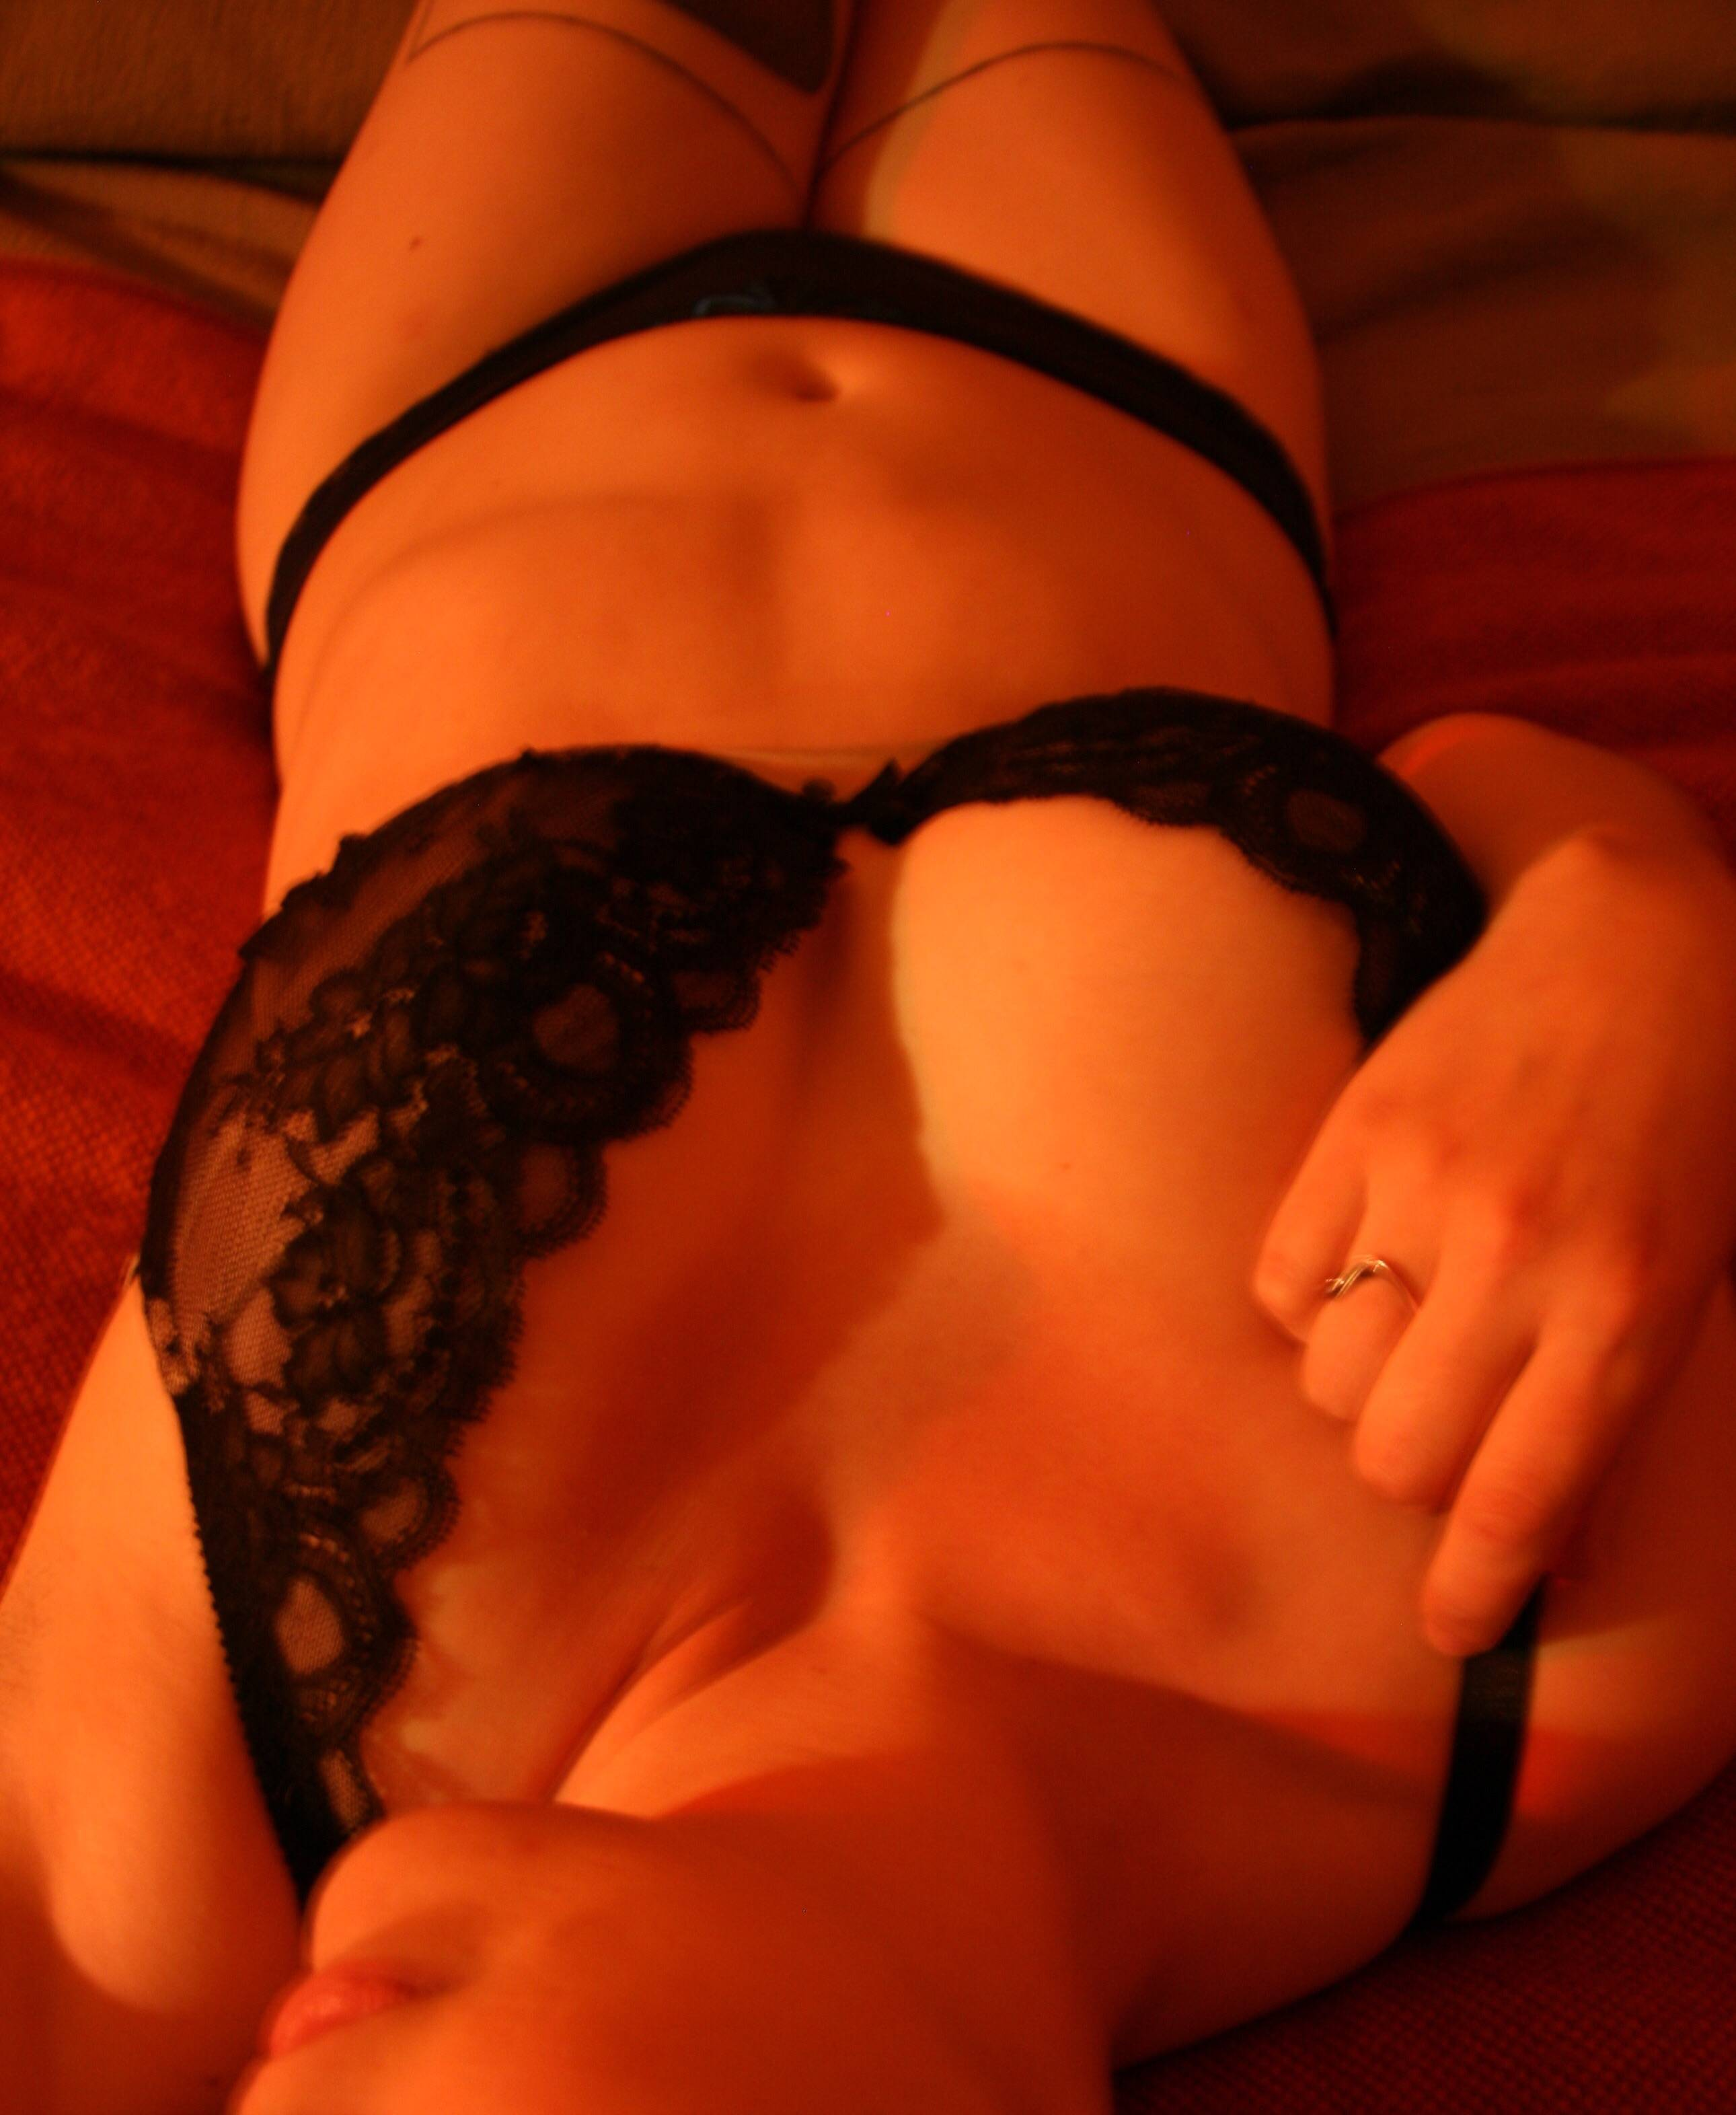 massage erotic nude sextreff i oslo